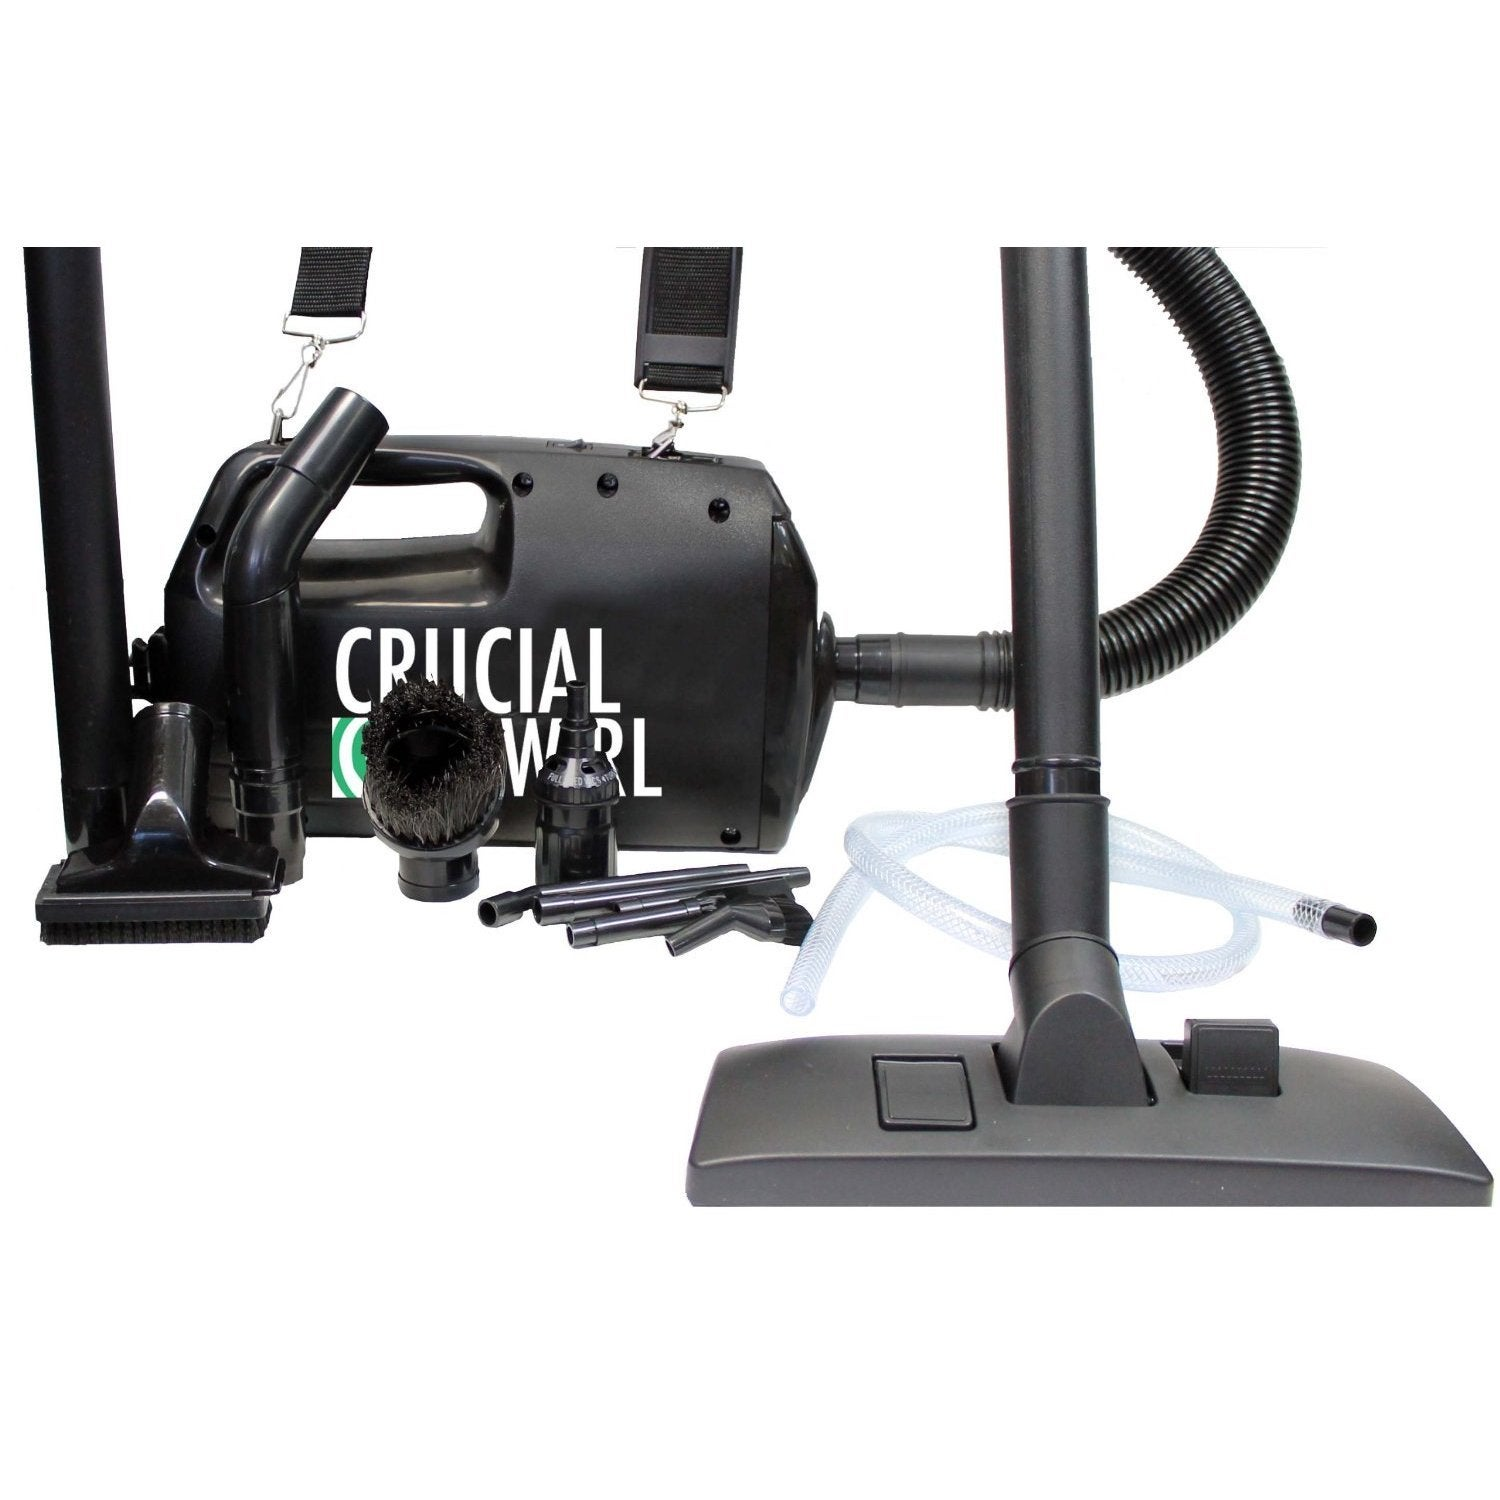 Crucial Swirl Handheld Portable Vacuum Cleaner and Blower...